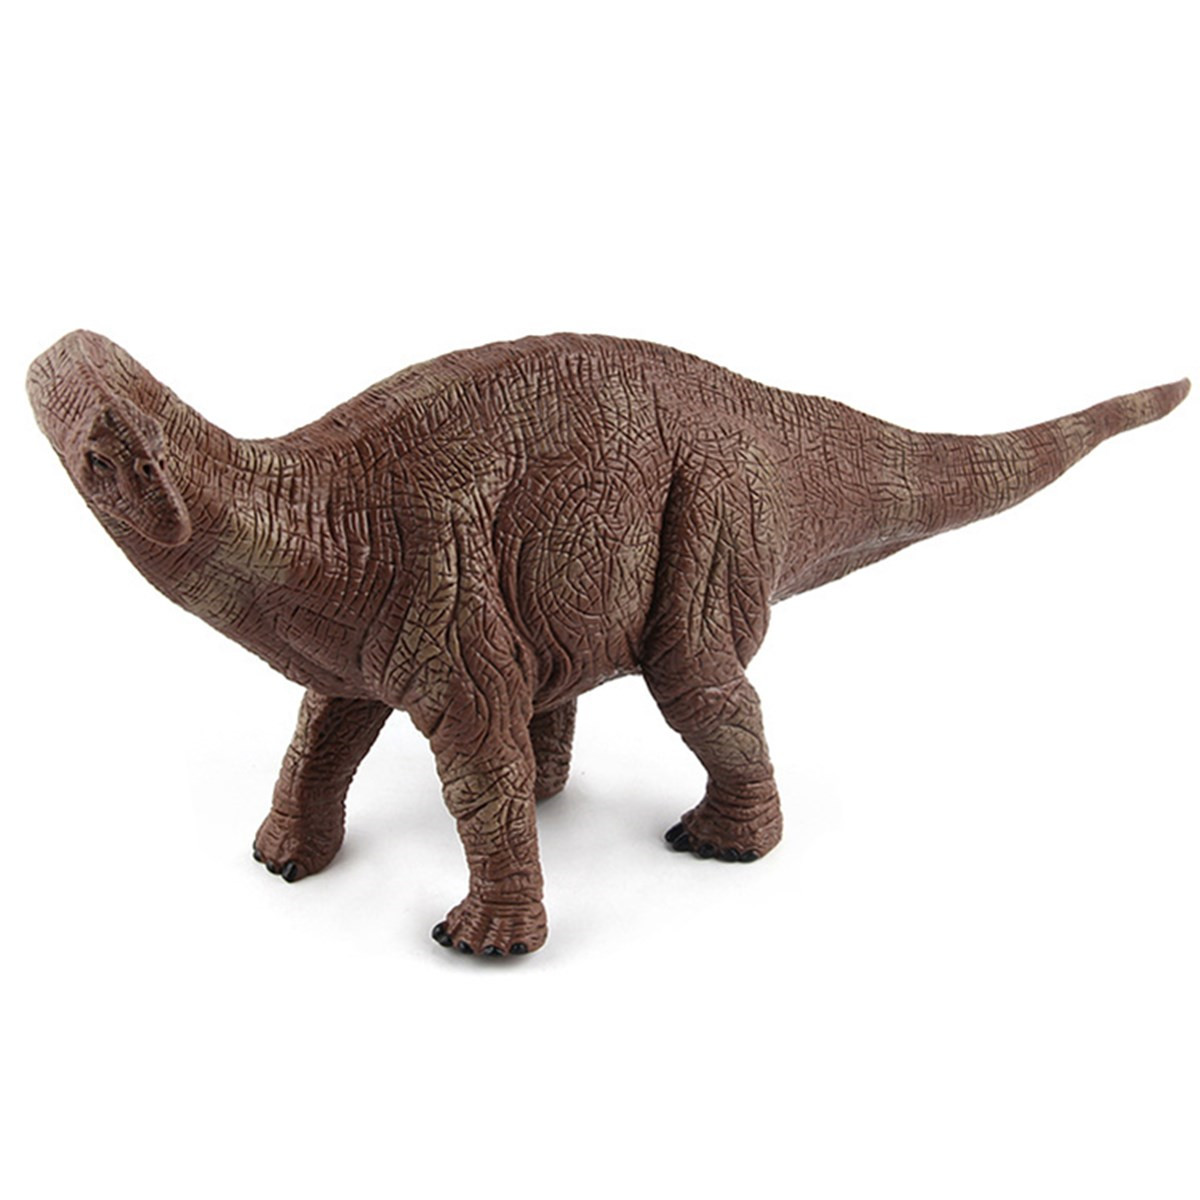 Grande Brachiosaurus Dinosaur Toy Realistic Diecast Model Solid Plastic Gift To Kids